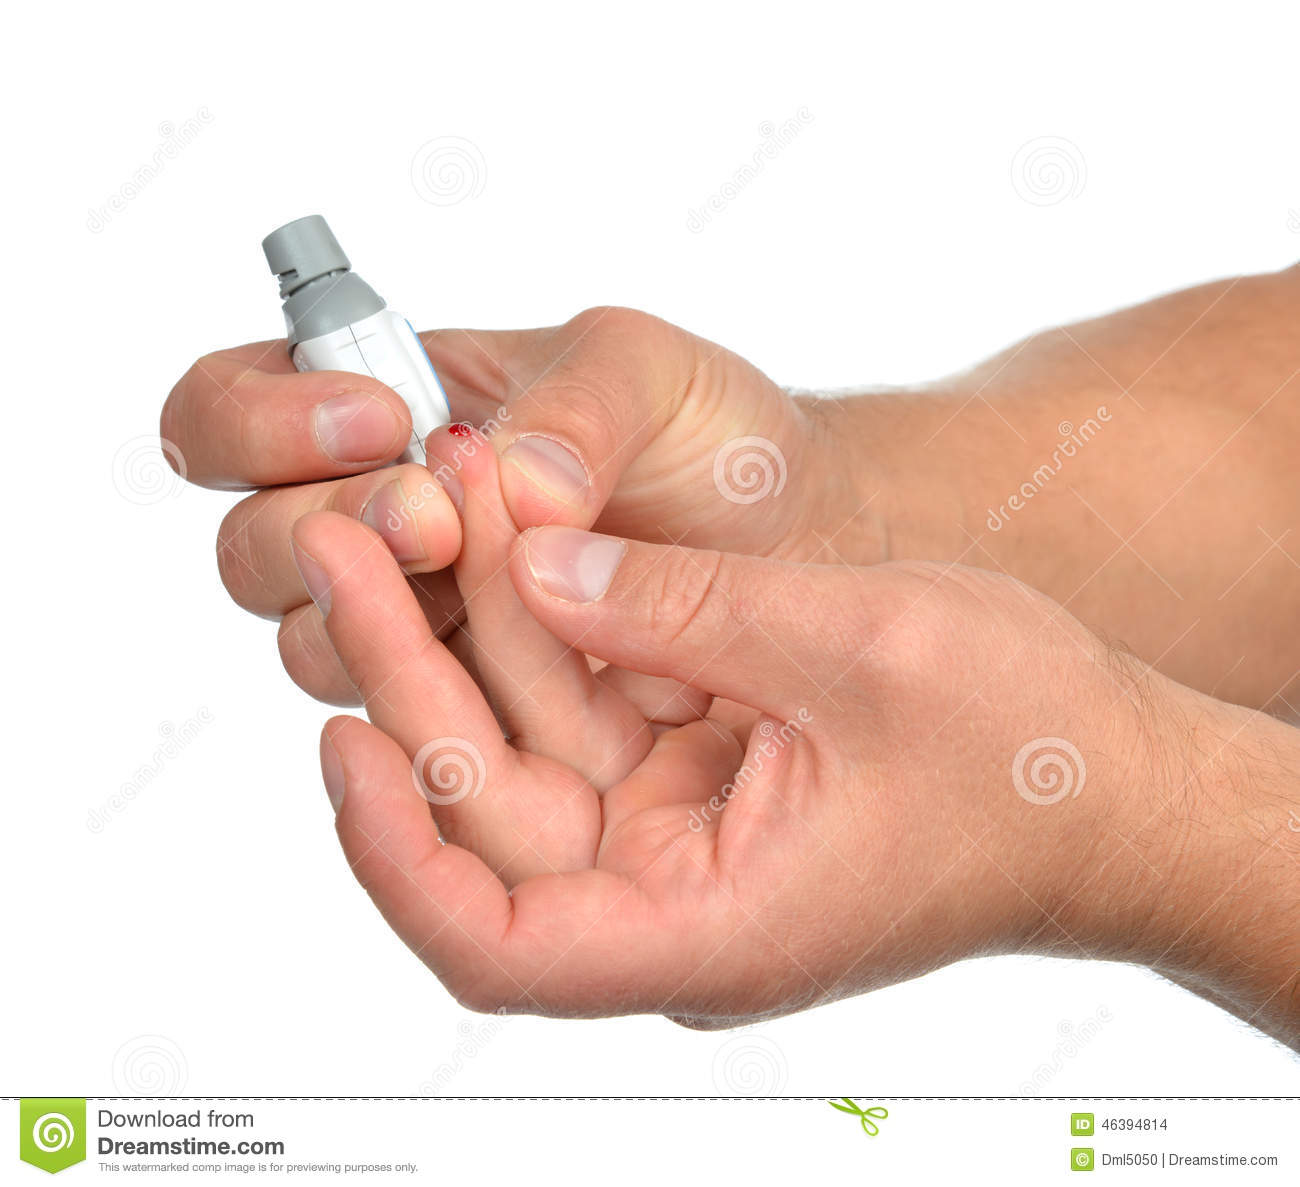 Diabetes Patient Finger To Make Glucose Level Blood Test